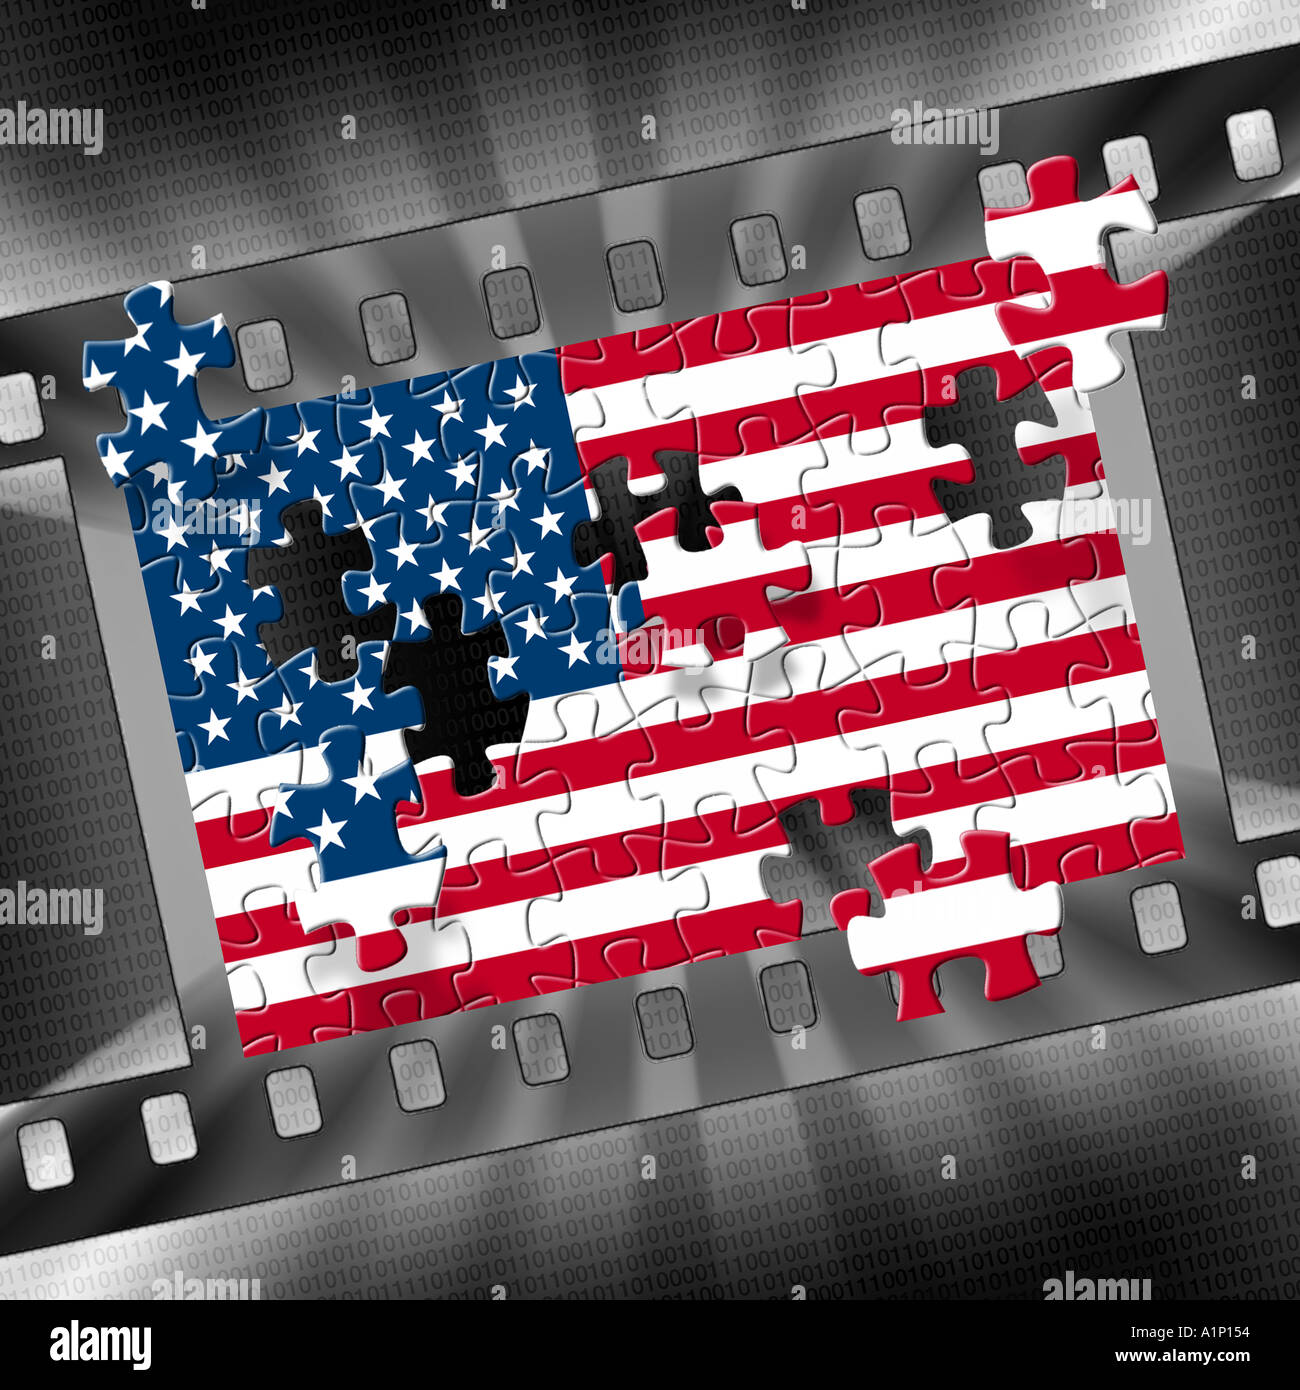 Jig saw puzzle pieces of American flag coming together in a film ...